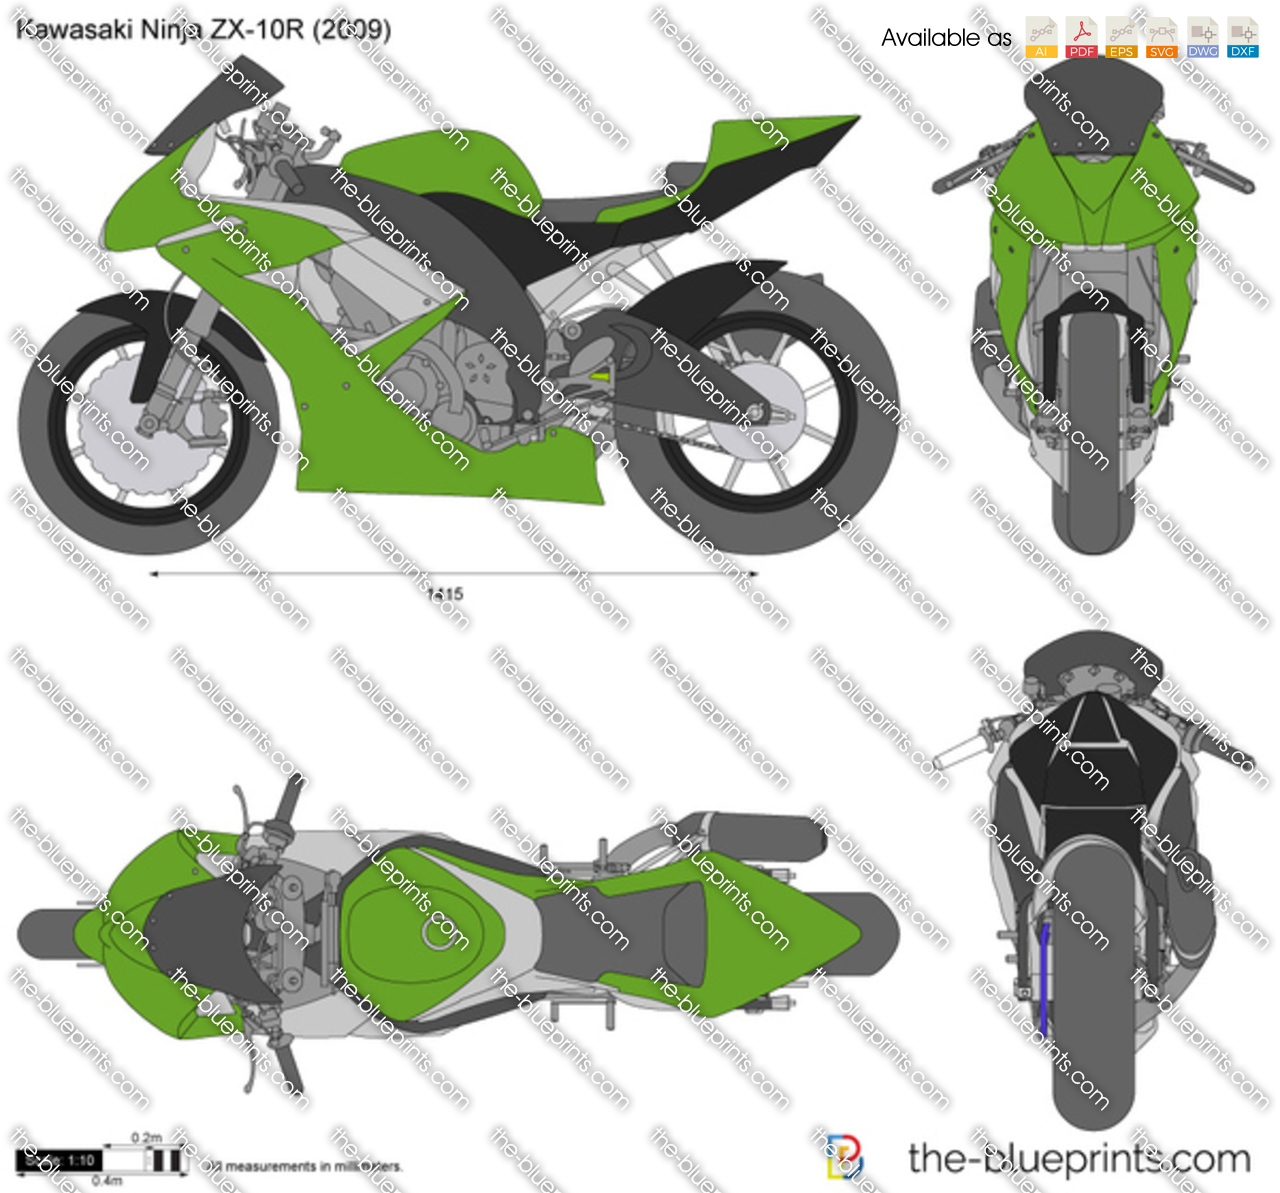 39600 as well 117609 100 Diy Kawasaki Ninja 300 Projector Hid Halo How 2 as well Muffler S likewise kawasaki together with 10 Facts You Should Know About The Roman Army Of The Early Republic. on kawasaki ninja tools